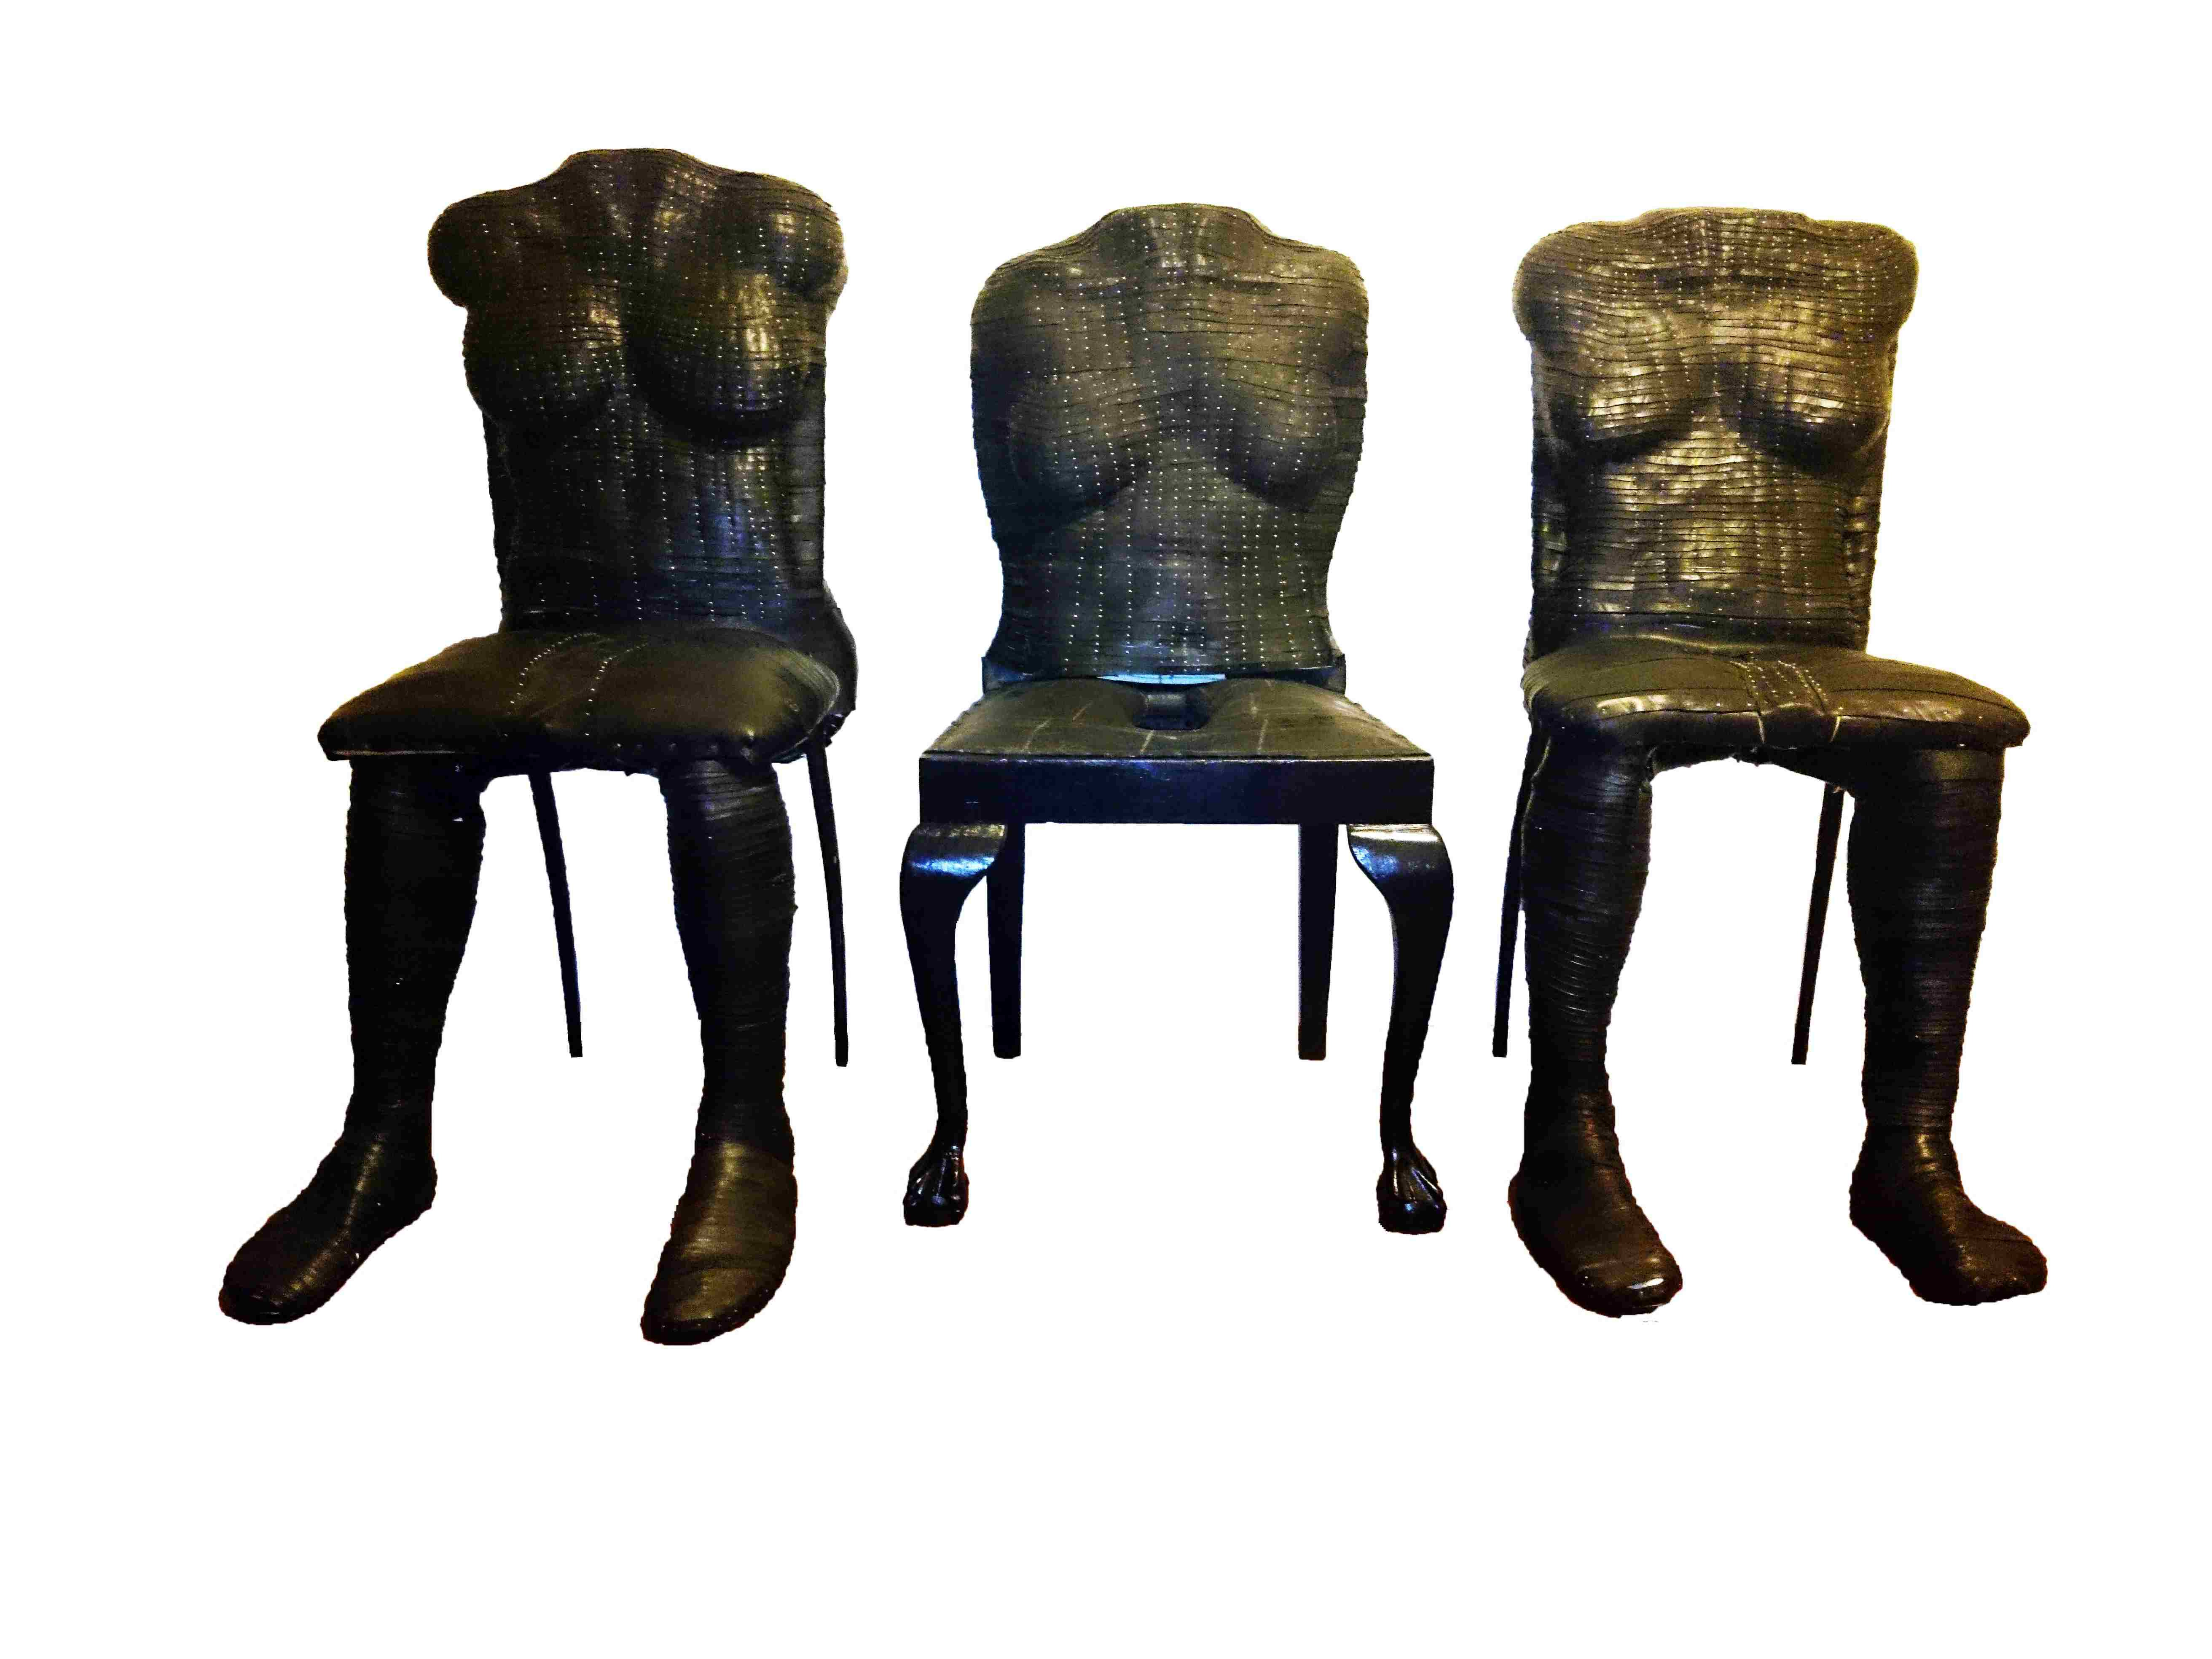 A trio of figurative sculptures of headless, armless, female torsos on the backs of chairs covered in strips of rubber and thousands of silver sewing pins.